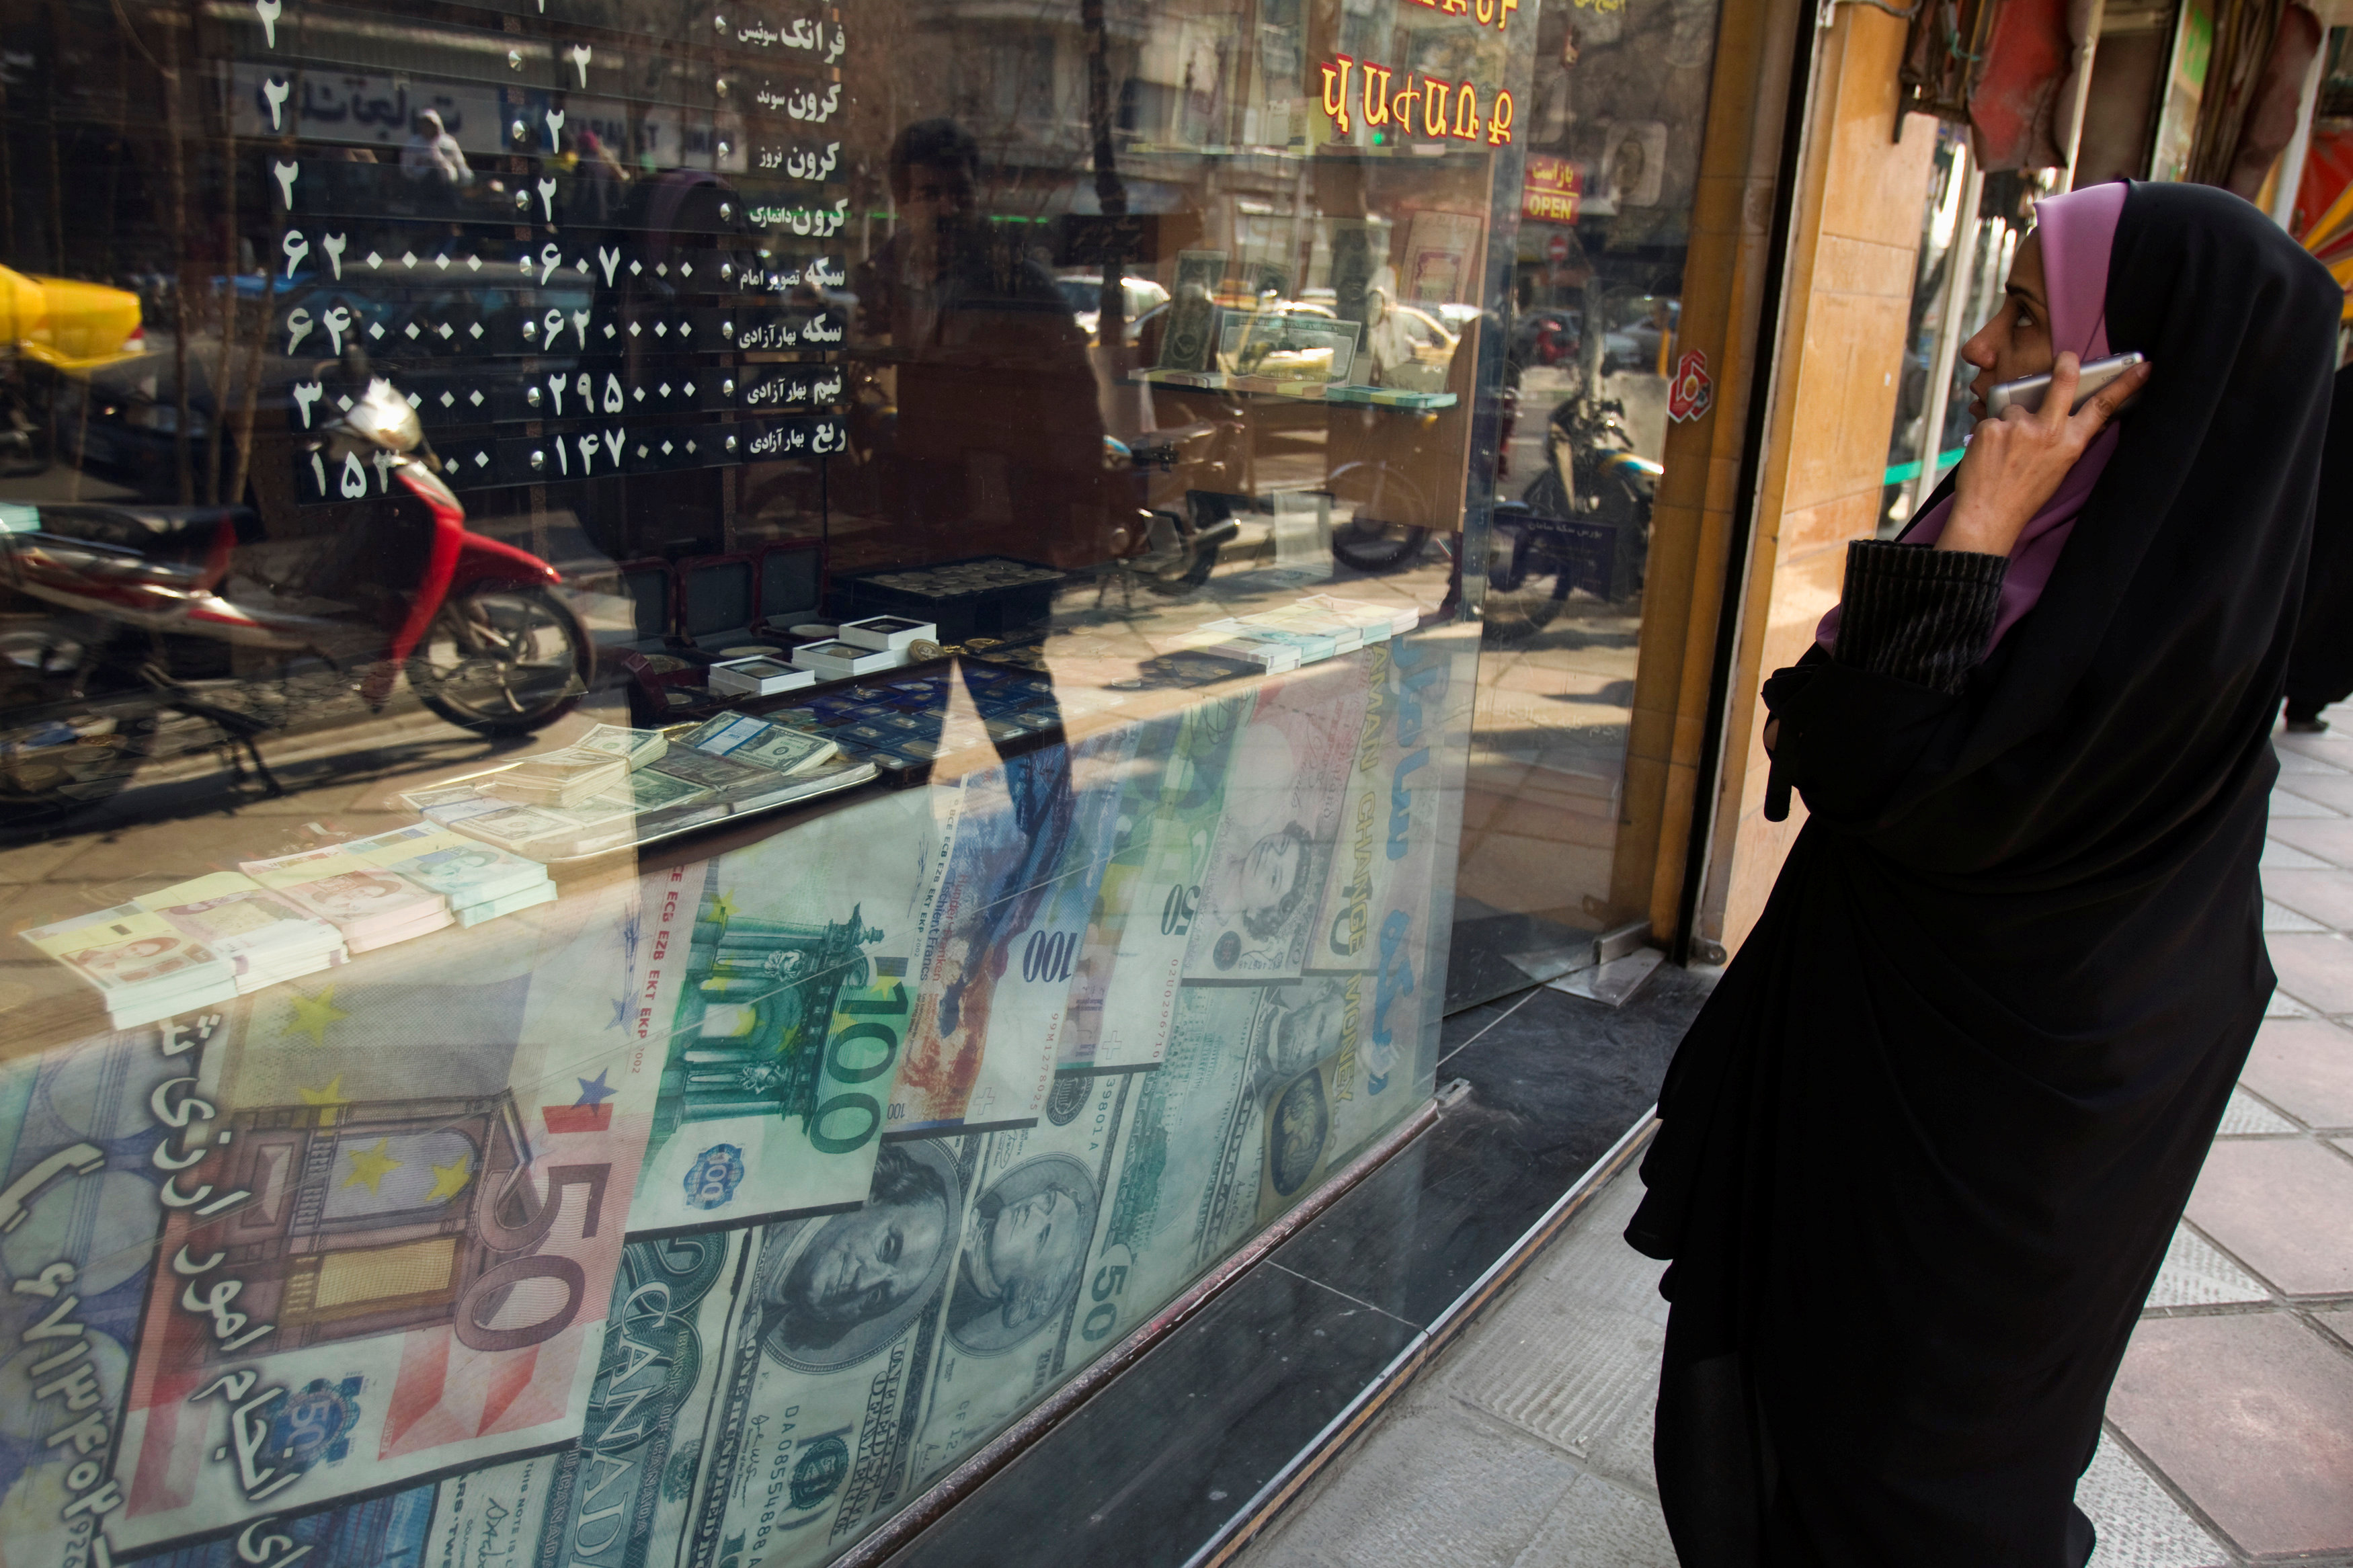 FILE PHOTO: A woman looks at exchange rates by the window of a currency exchange shop in Tehran's business district, Iran January 7, 2012. REUTERS/Raheb Homavandi /File Photo